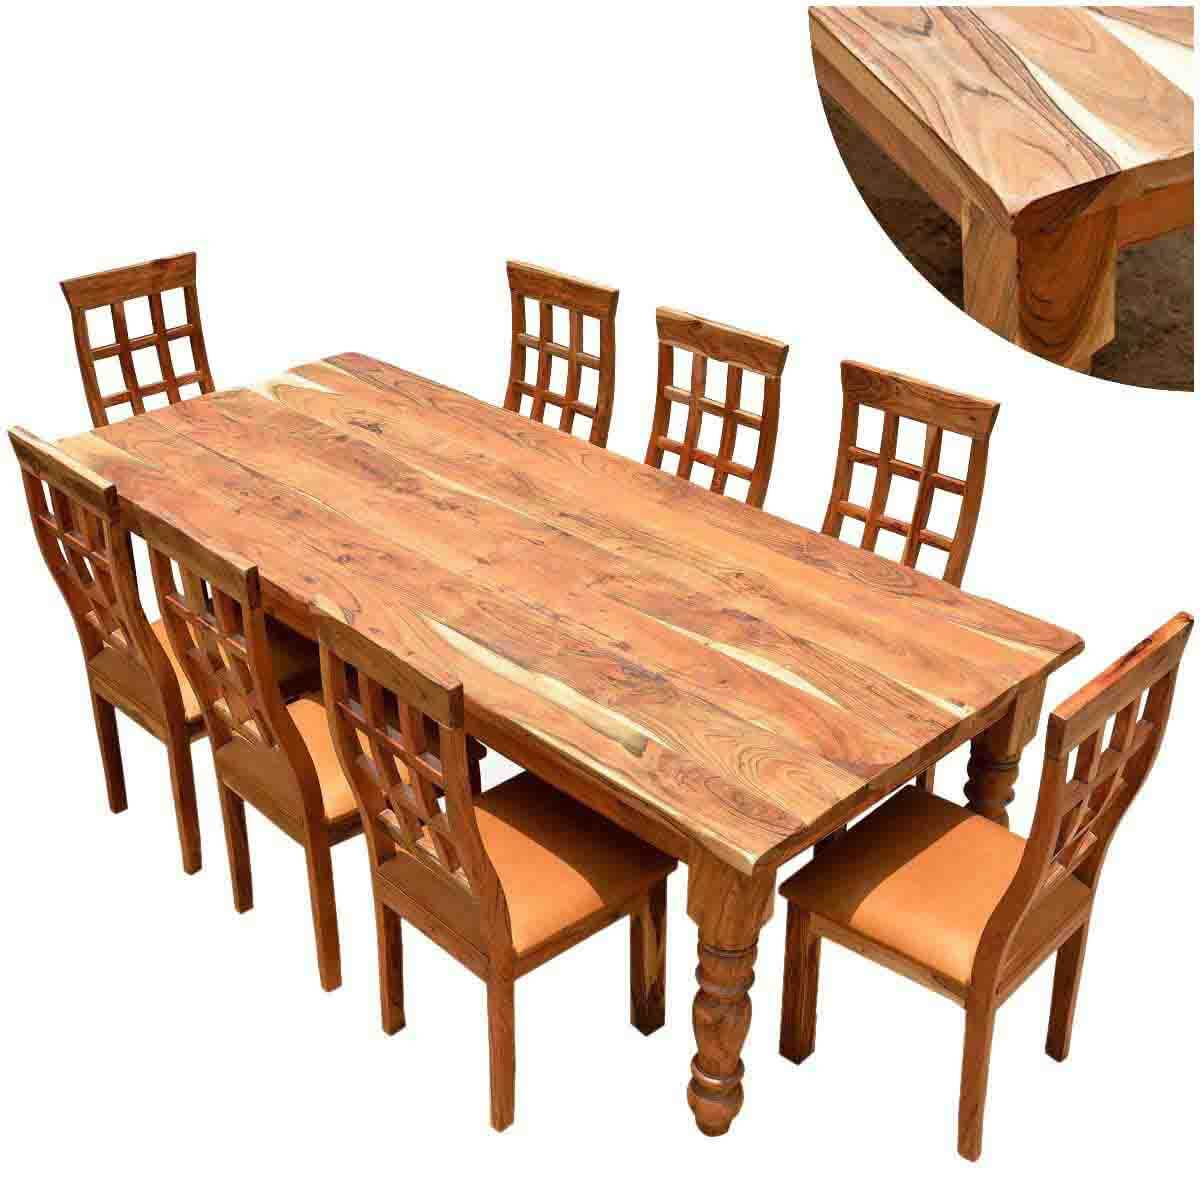 Rustic Dining Room Table Sets: Rustic Dining Table And Chair Sets